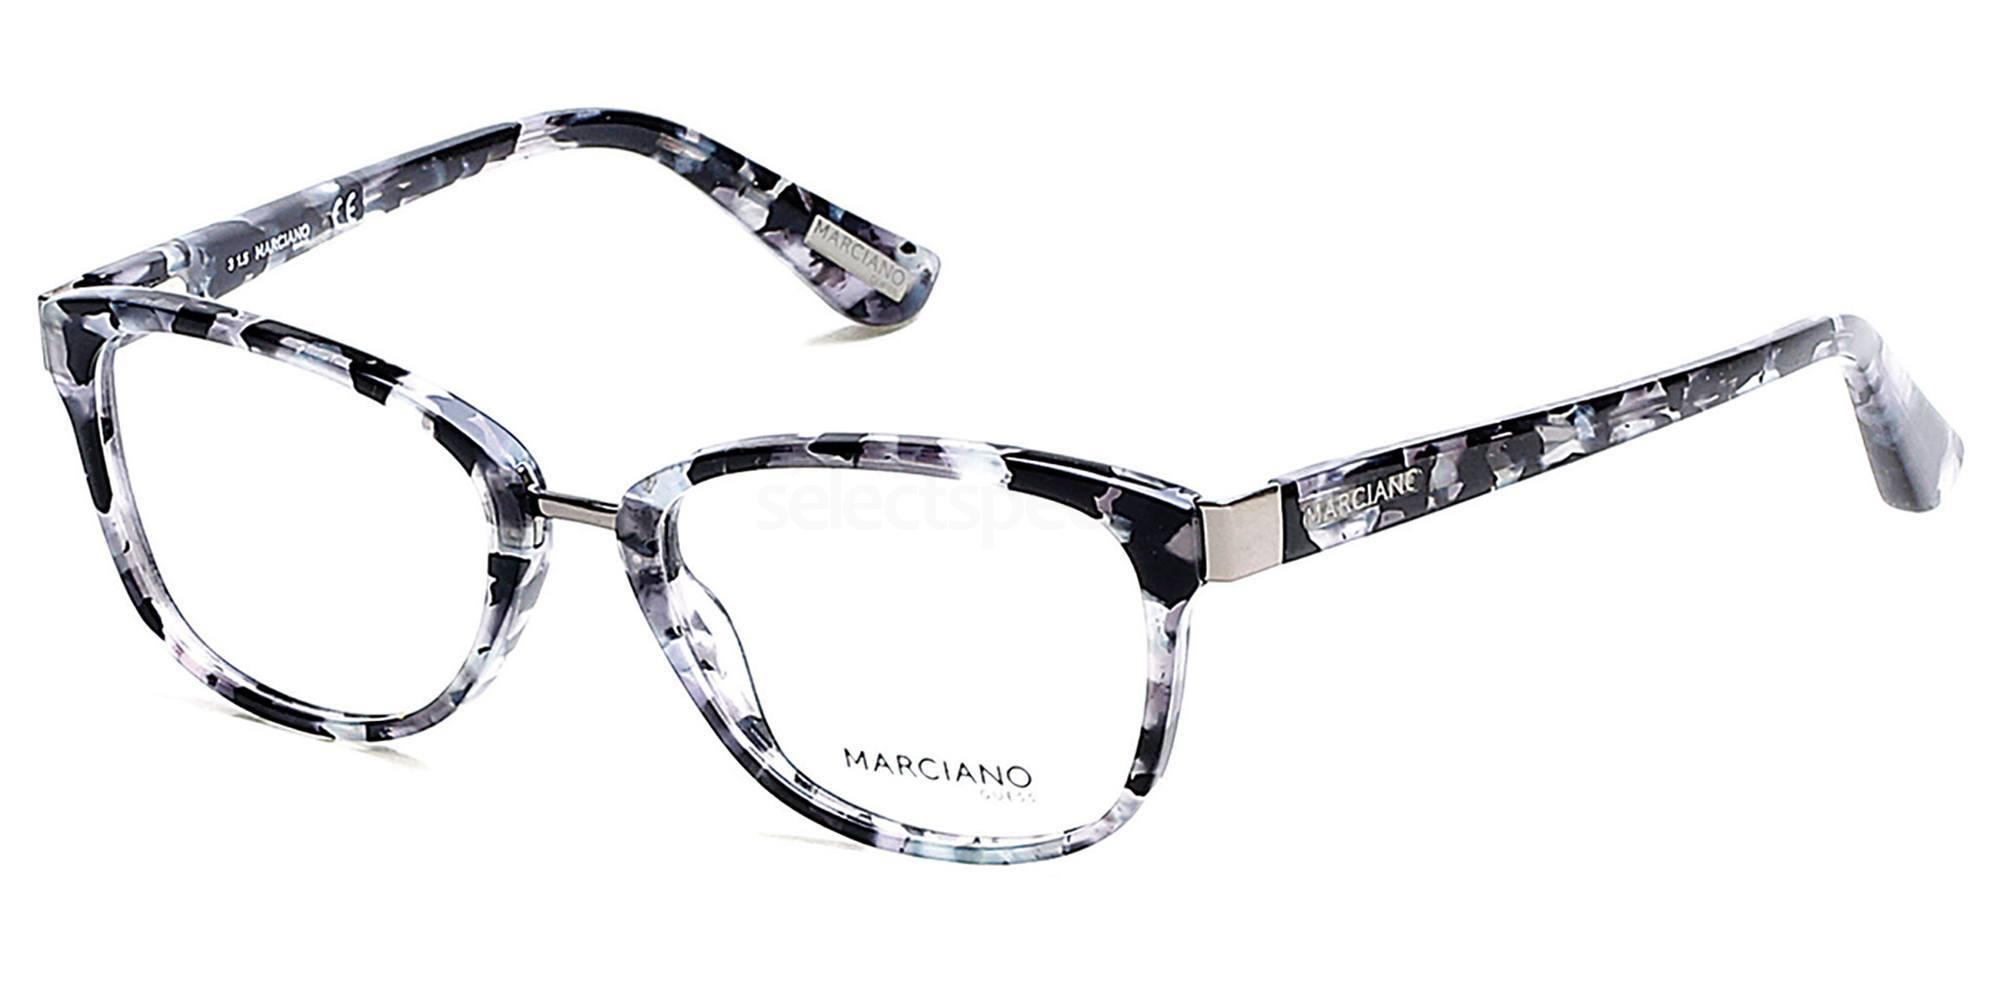 005 GM0286 Glasses, Guess by Marciano